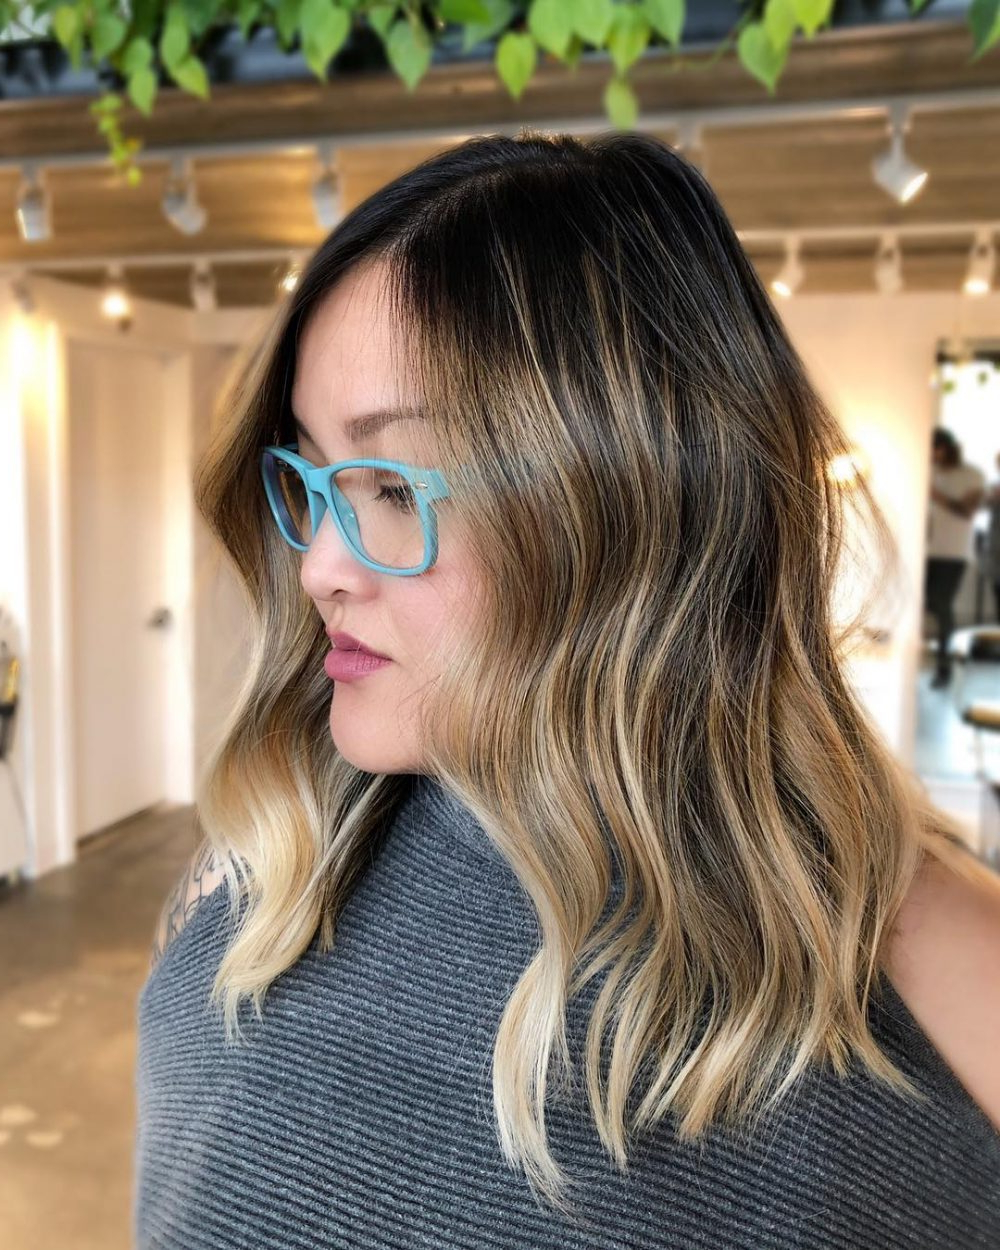 Fashionable Medium Haircuts For Girls With Glasses Intended For 24 Medium Hairstyles For Oval Faces In  (View 8 of 20)